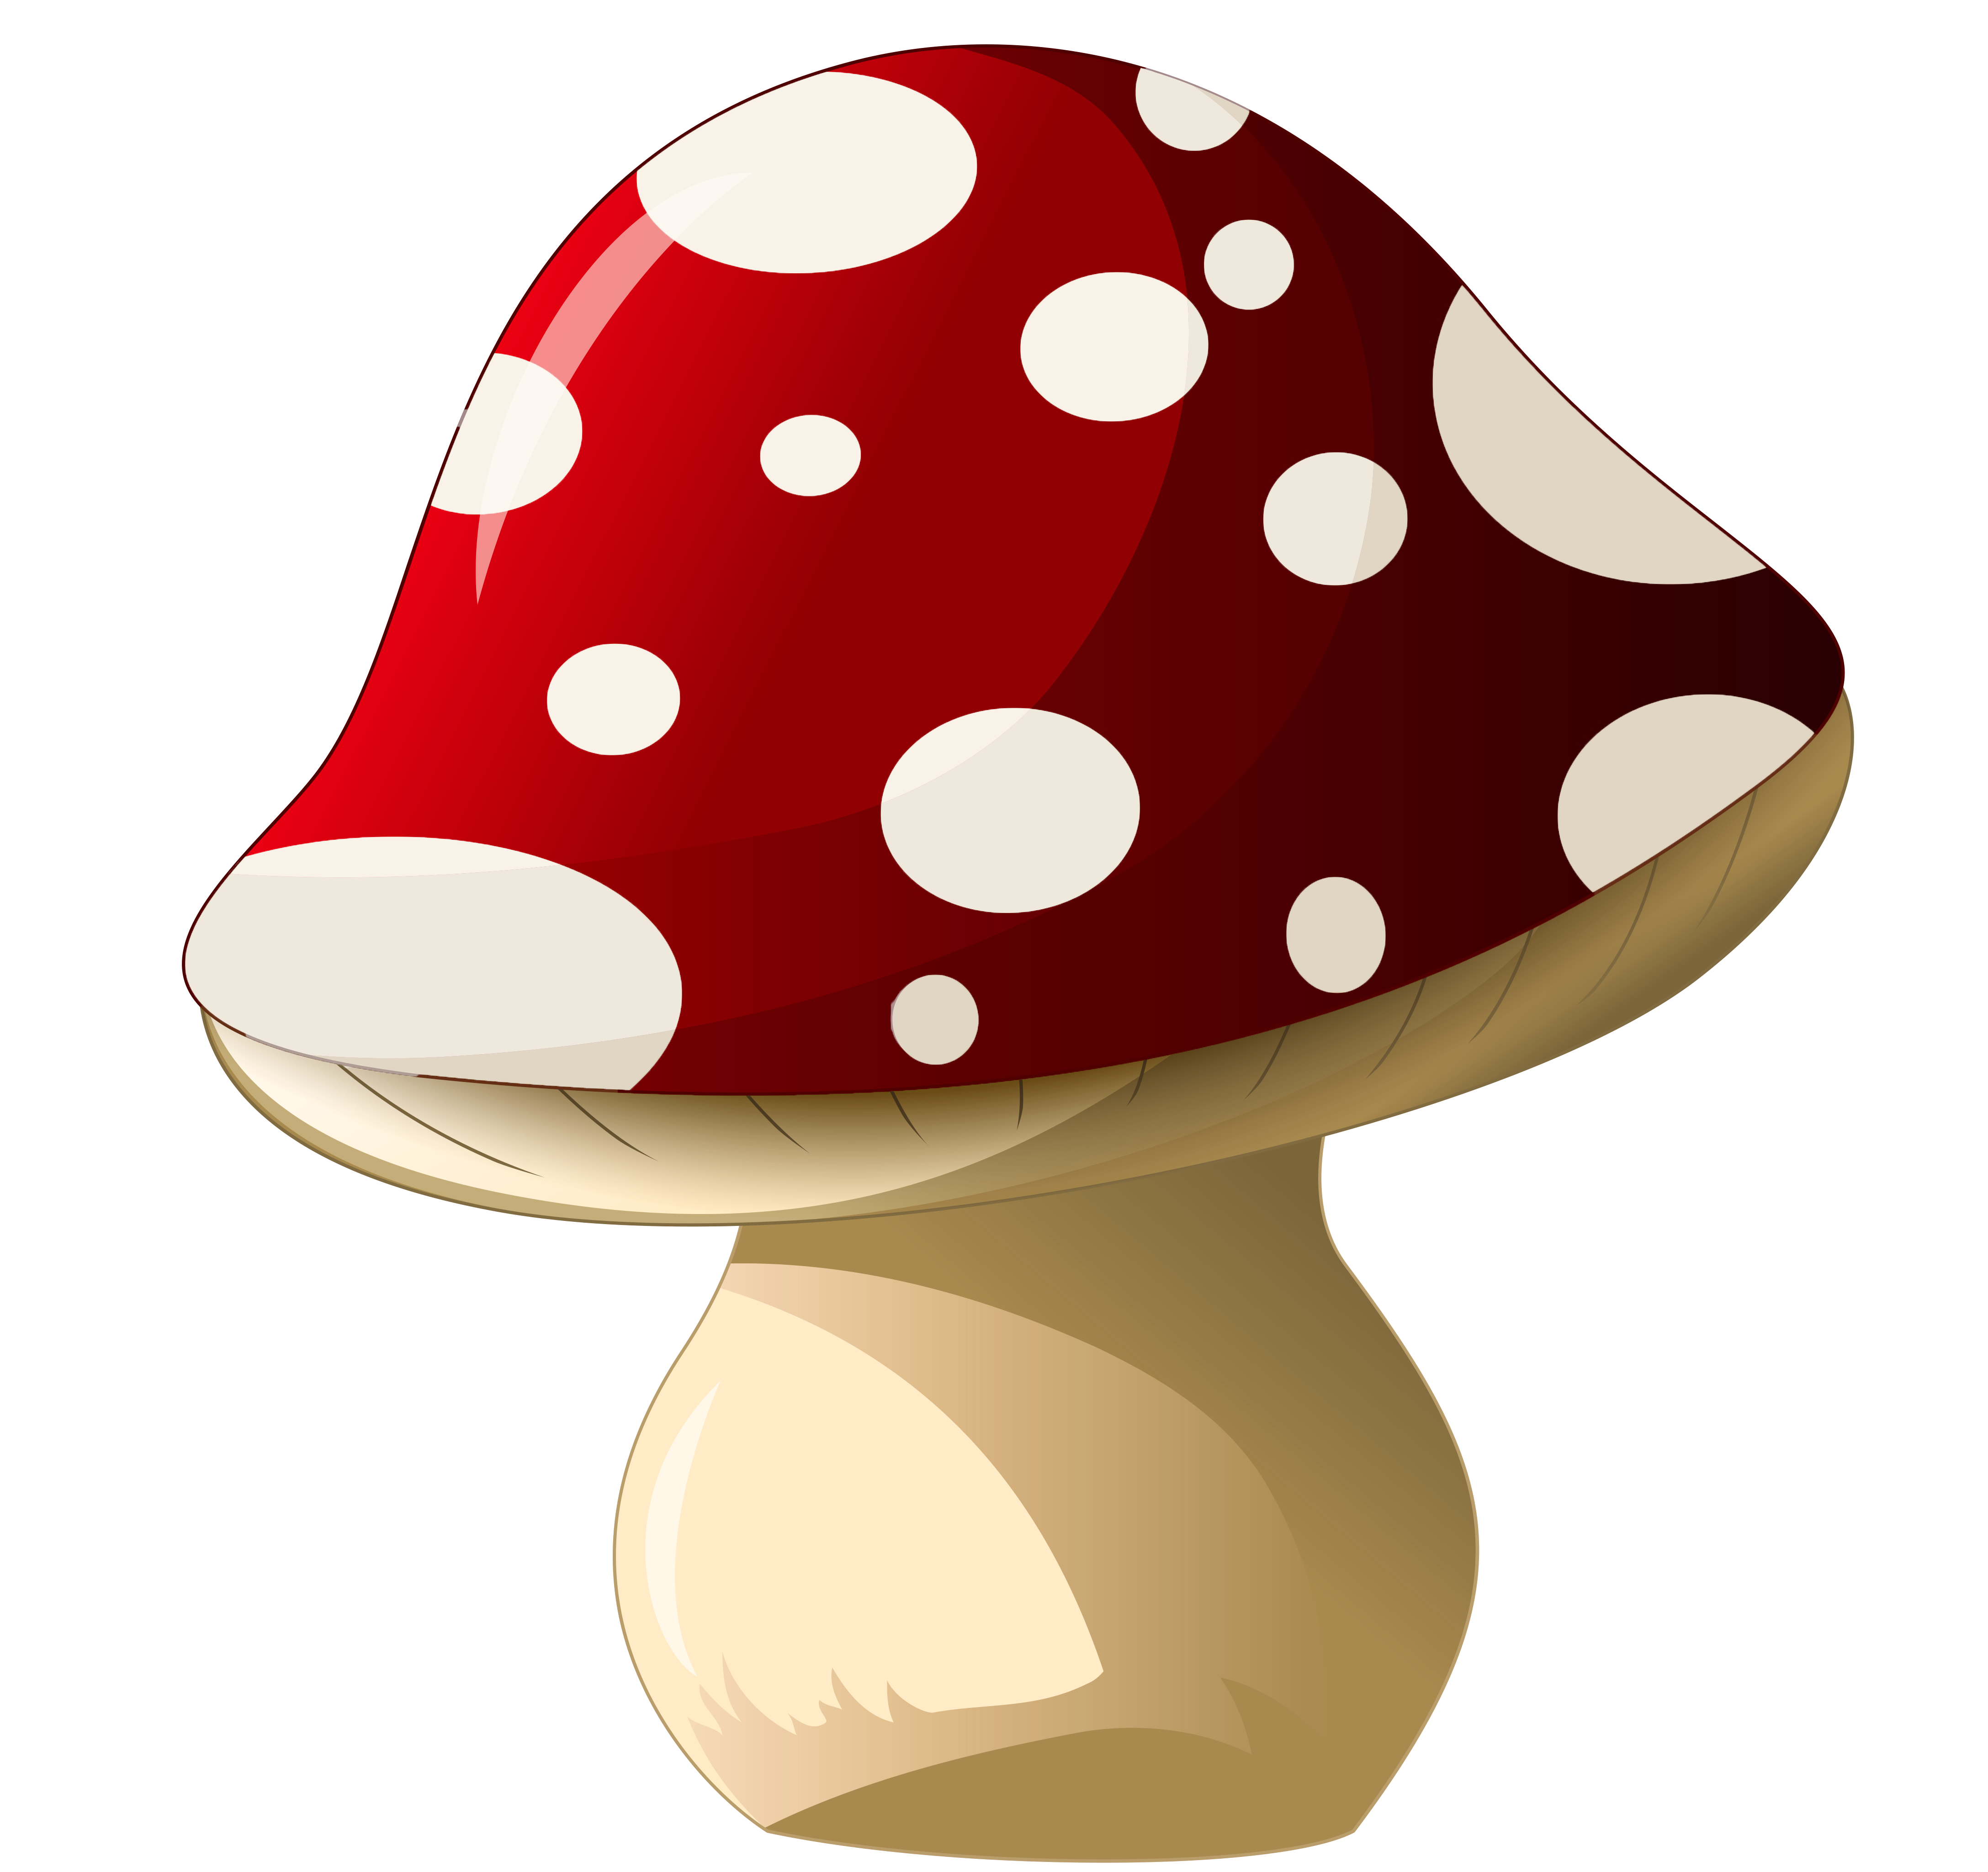 Mushroom png clipart picture. Mushrooms vector cute little clip art library